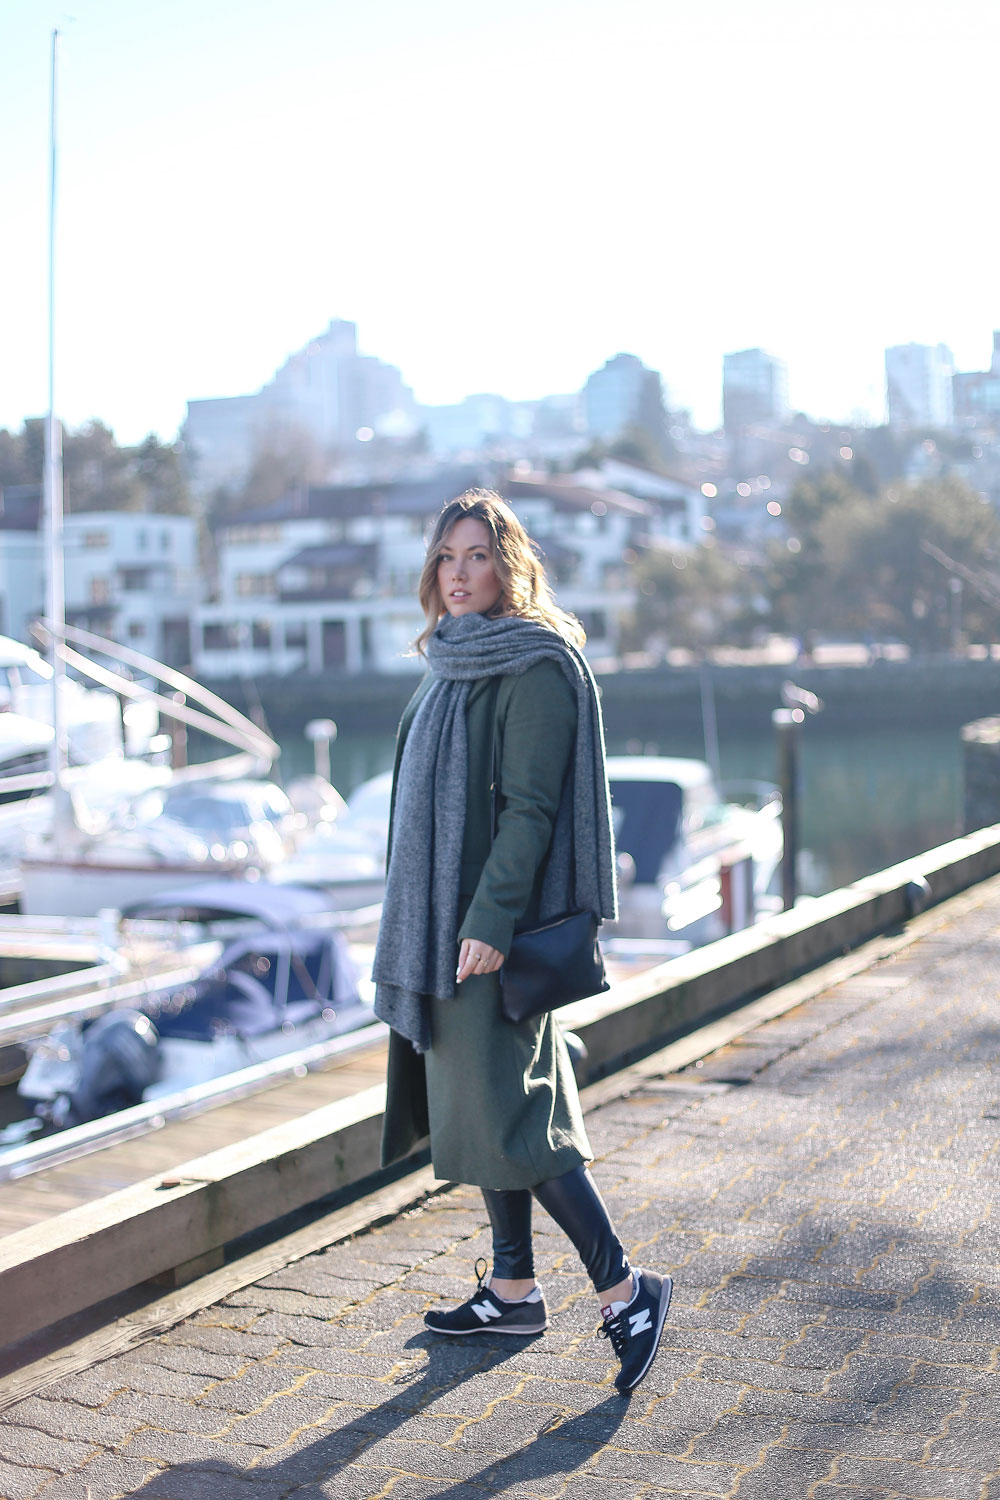 Tips to style sneakers in New Balance sneakers, a statement green coat, leather leggings and cashmere cardigan